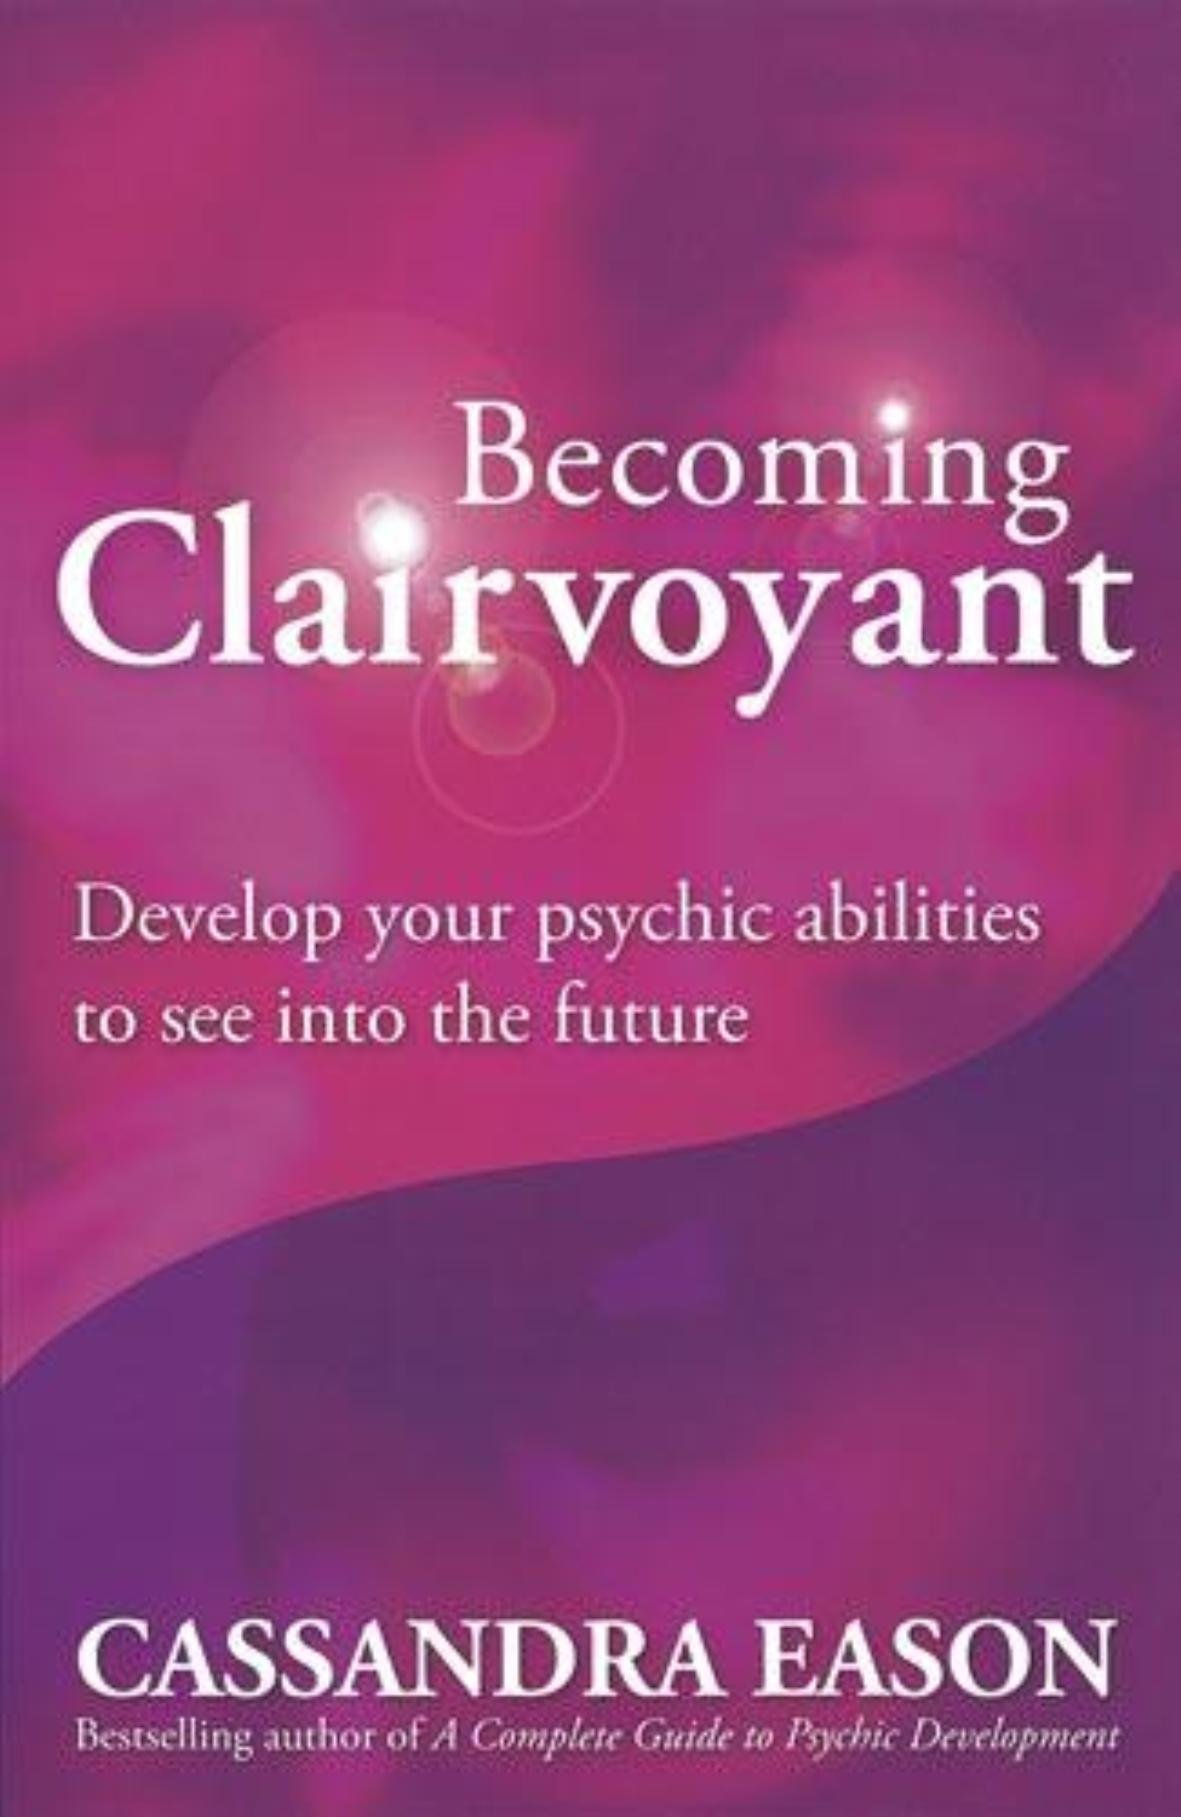 Becoming Clairvoyant: Develop Your Psychic Abilities to See into the Future ebook